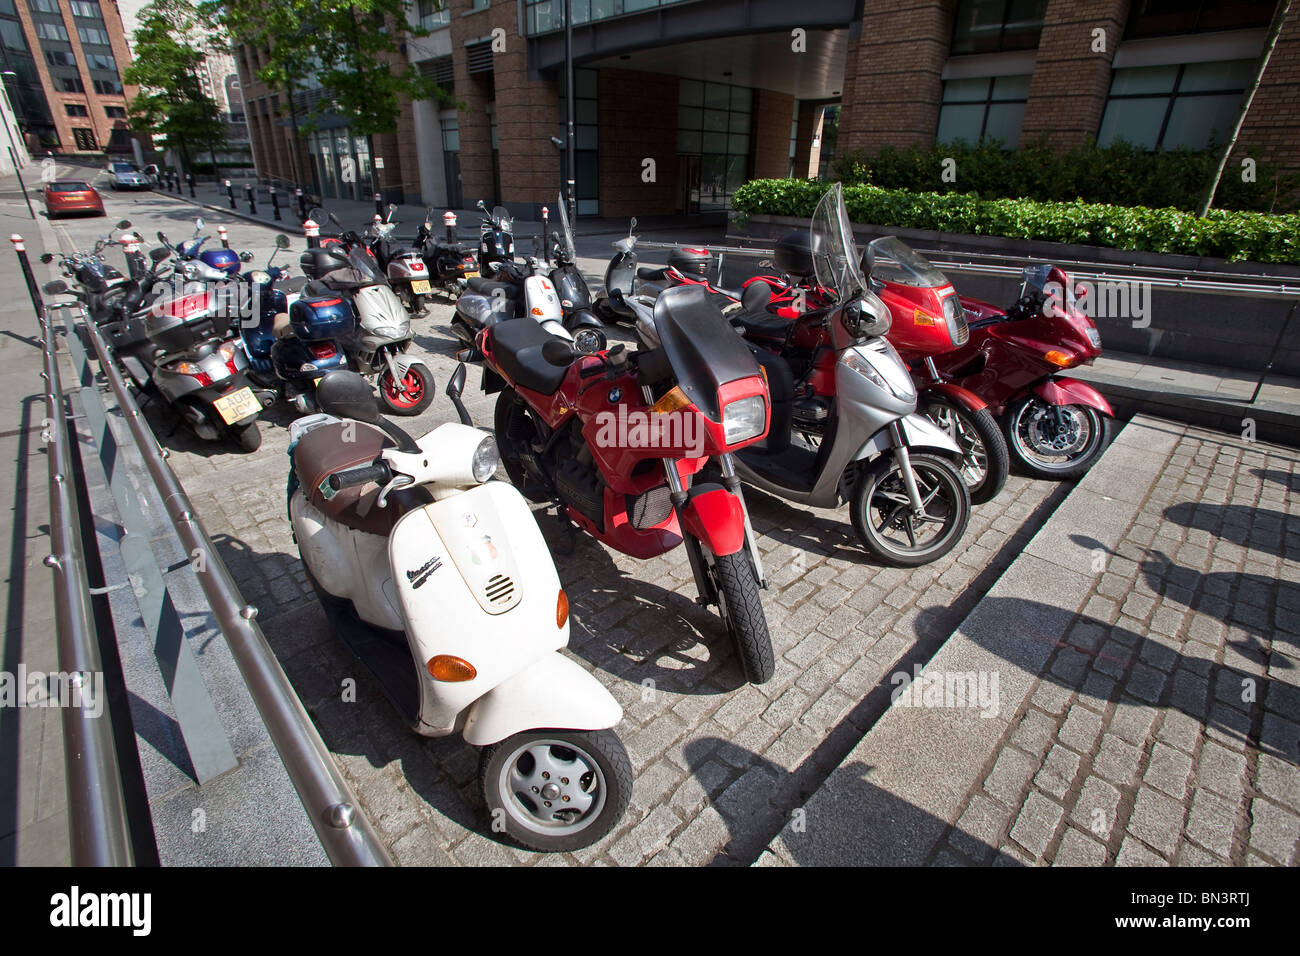 Numerous motorbikes and scooters in the city centre of London - Stock Image